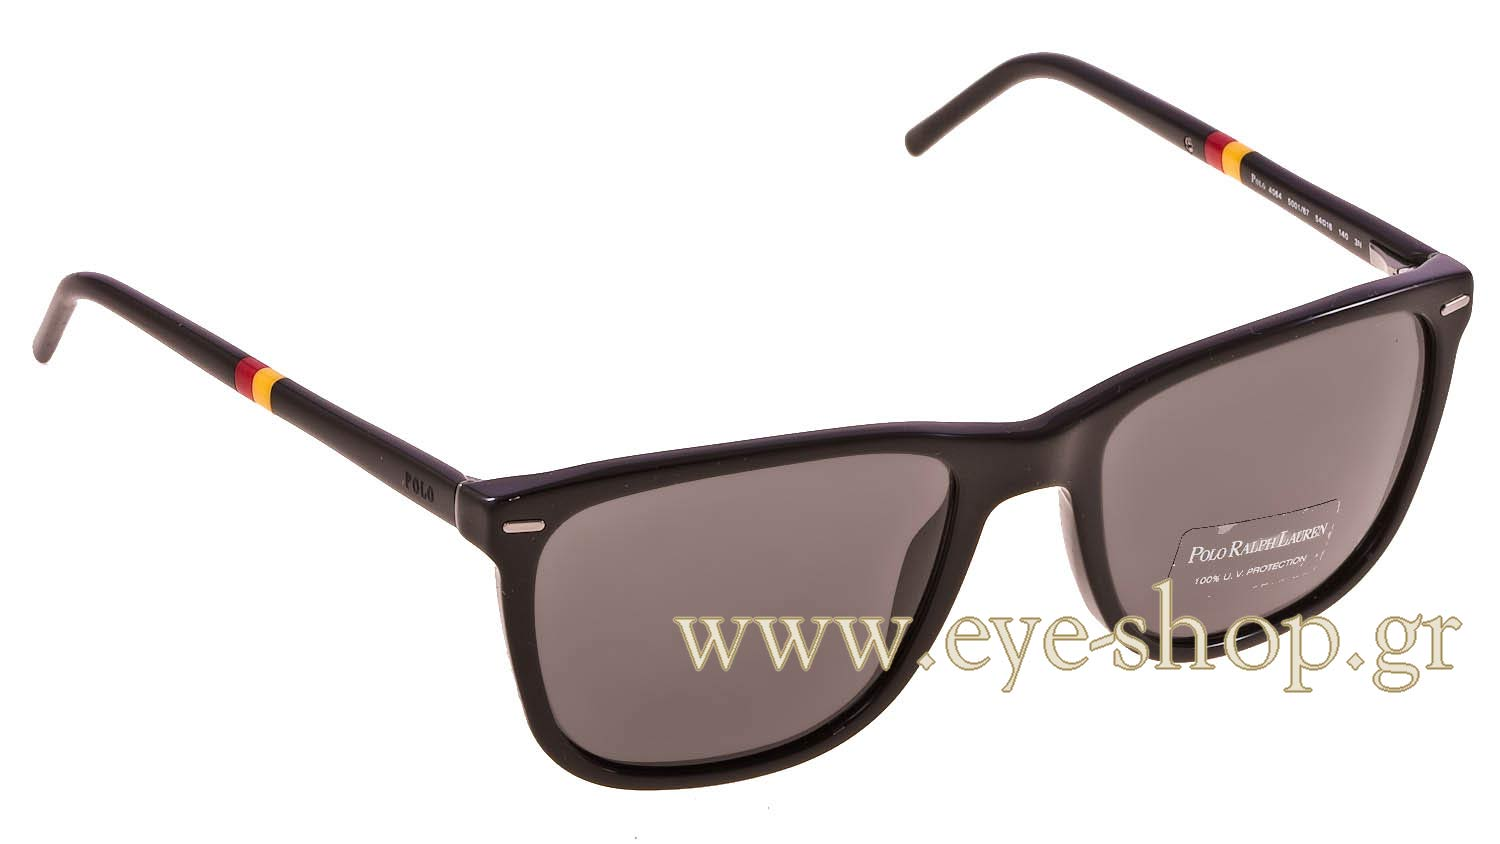 Polo Eyeglass Frame Parts : Polo Ralph Lauren Sunglasses Parts